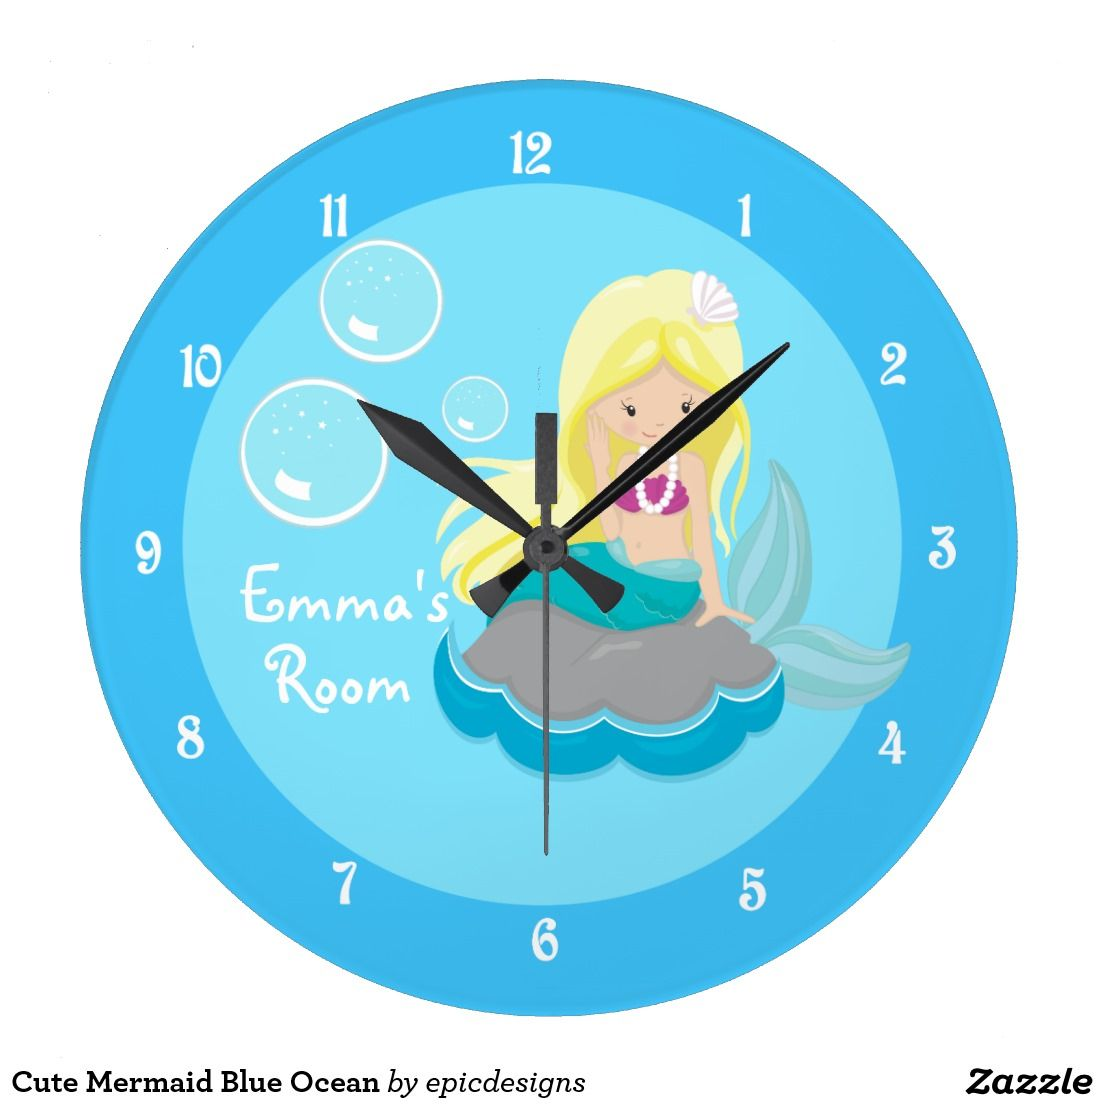 Cute Mermaid Blue Ocean Clock for a beach house with your own personalized text